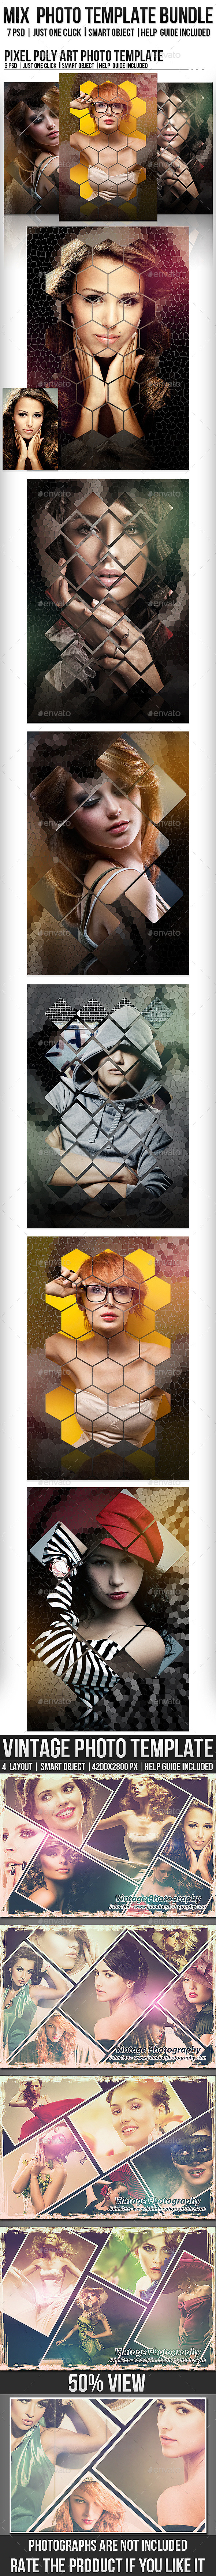 GraphicRiver Mix Photo Template Bundle 11849495